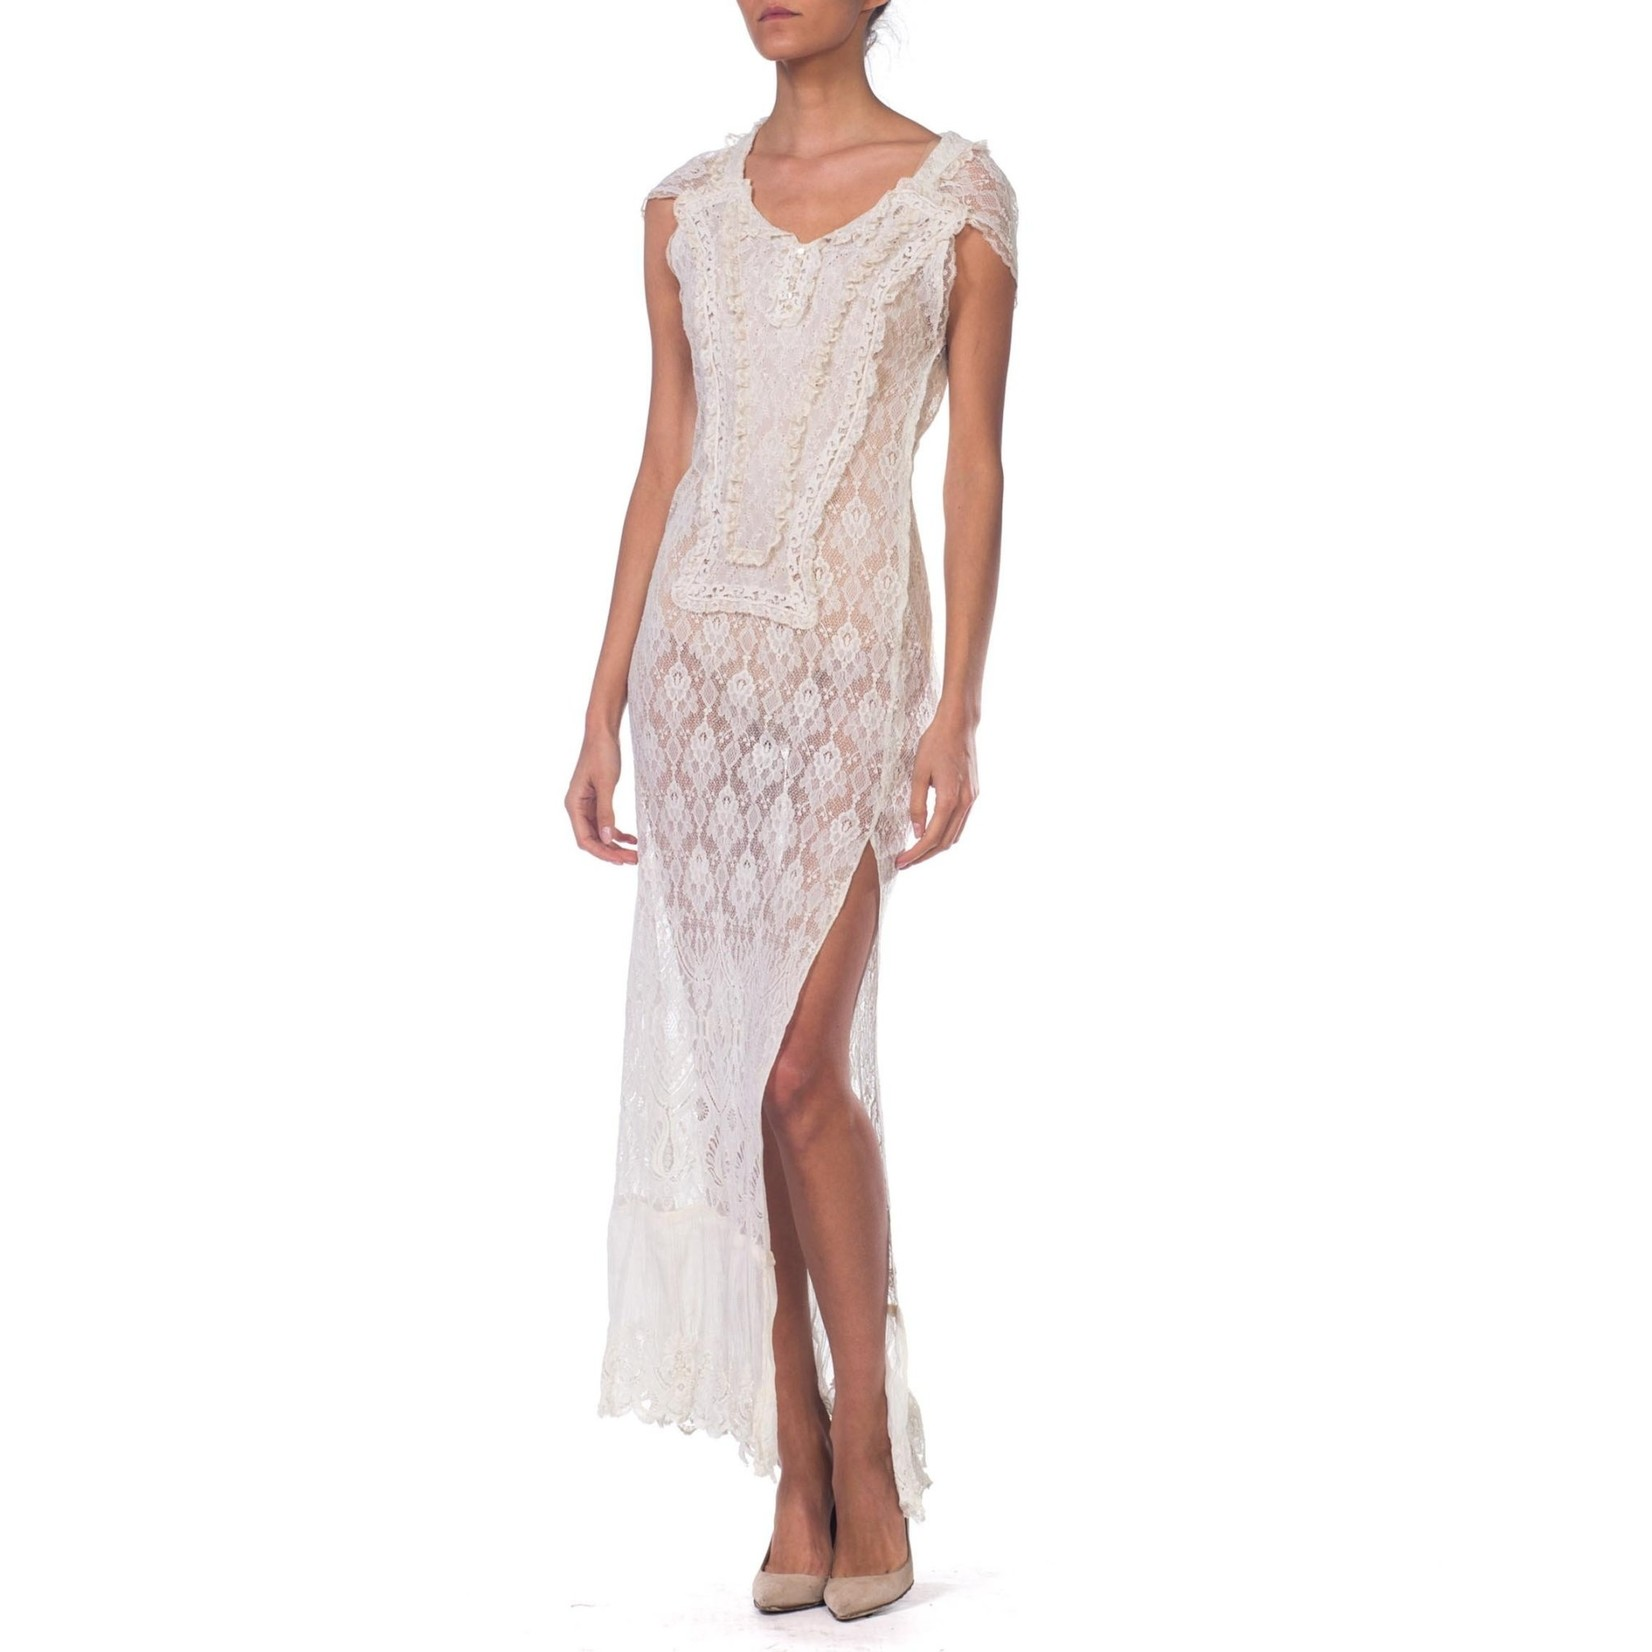 Wyld Blue Vintage MORPHEW COLLECTION White Maxi Resort Dress Made from Edwardian & 1930's Lace  MCFD7ON0386